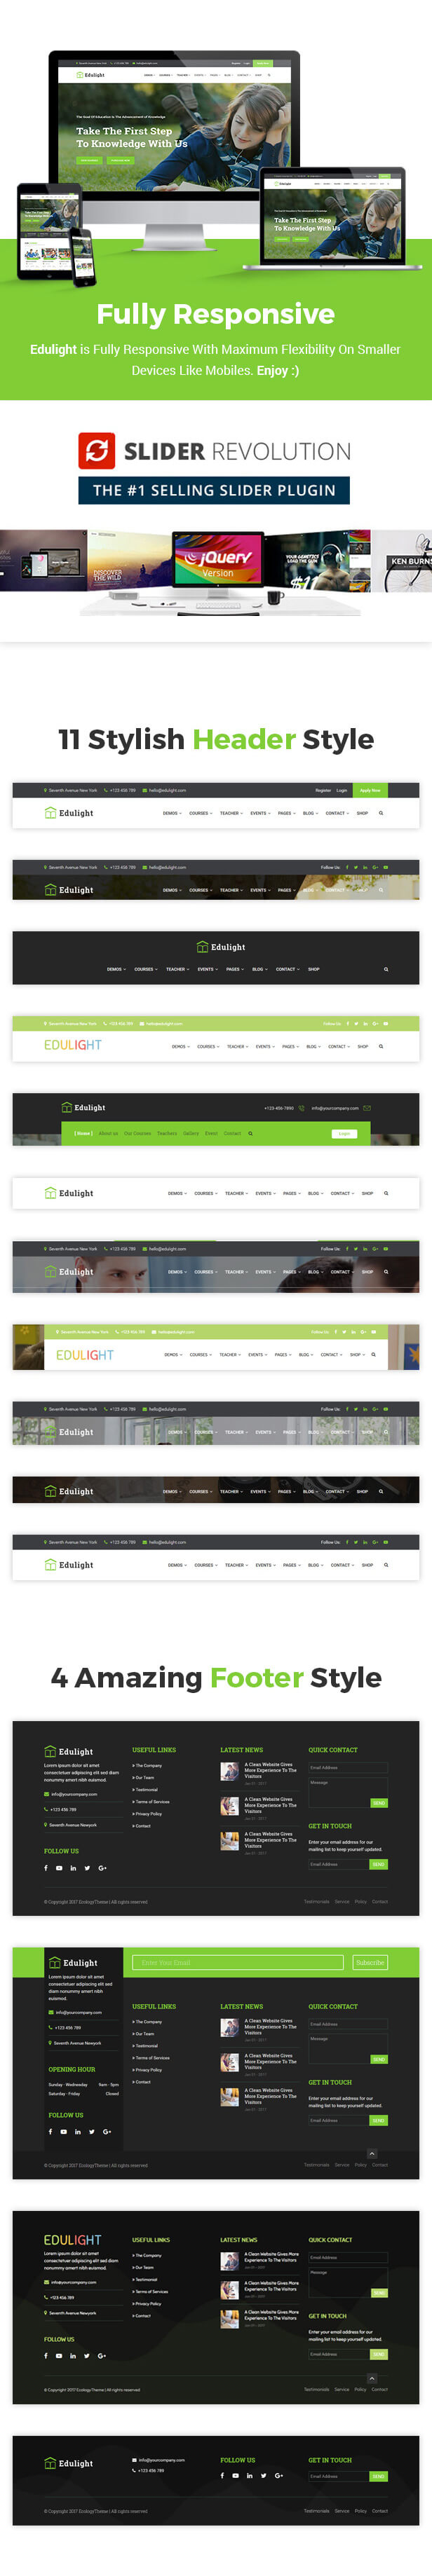 EduLight - University Education Template